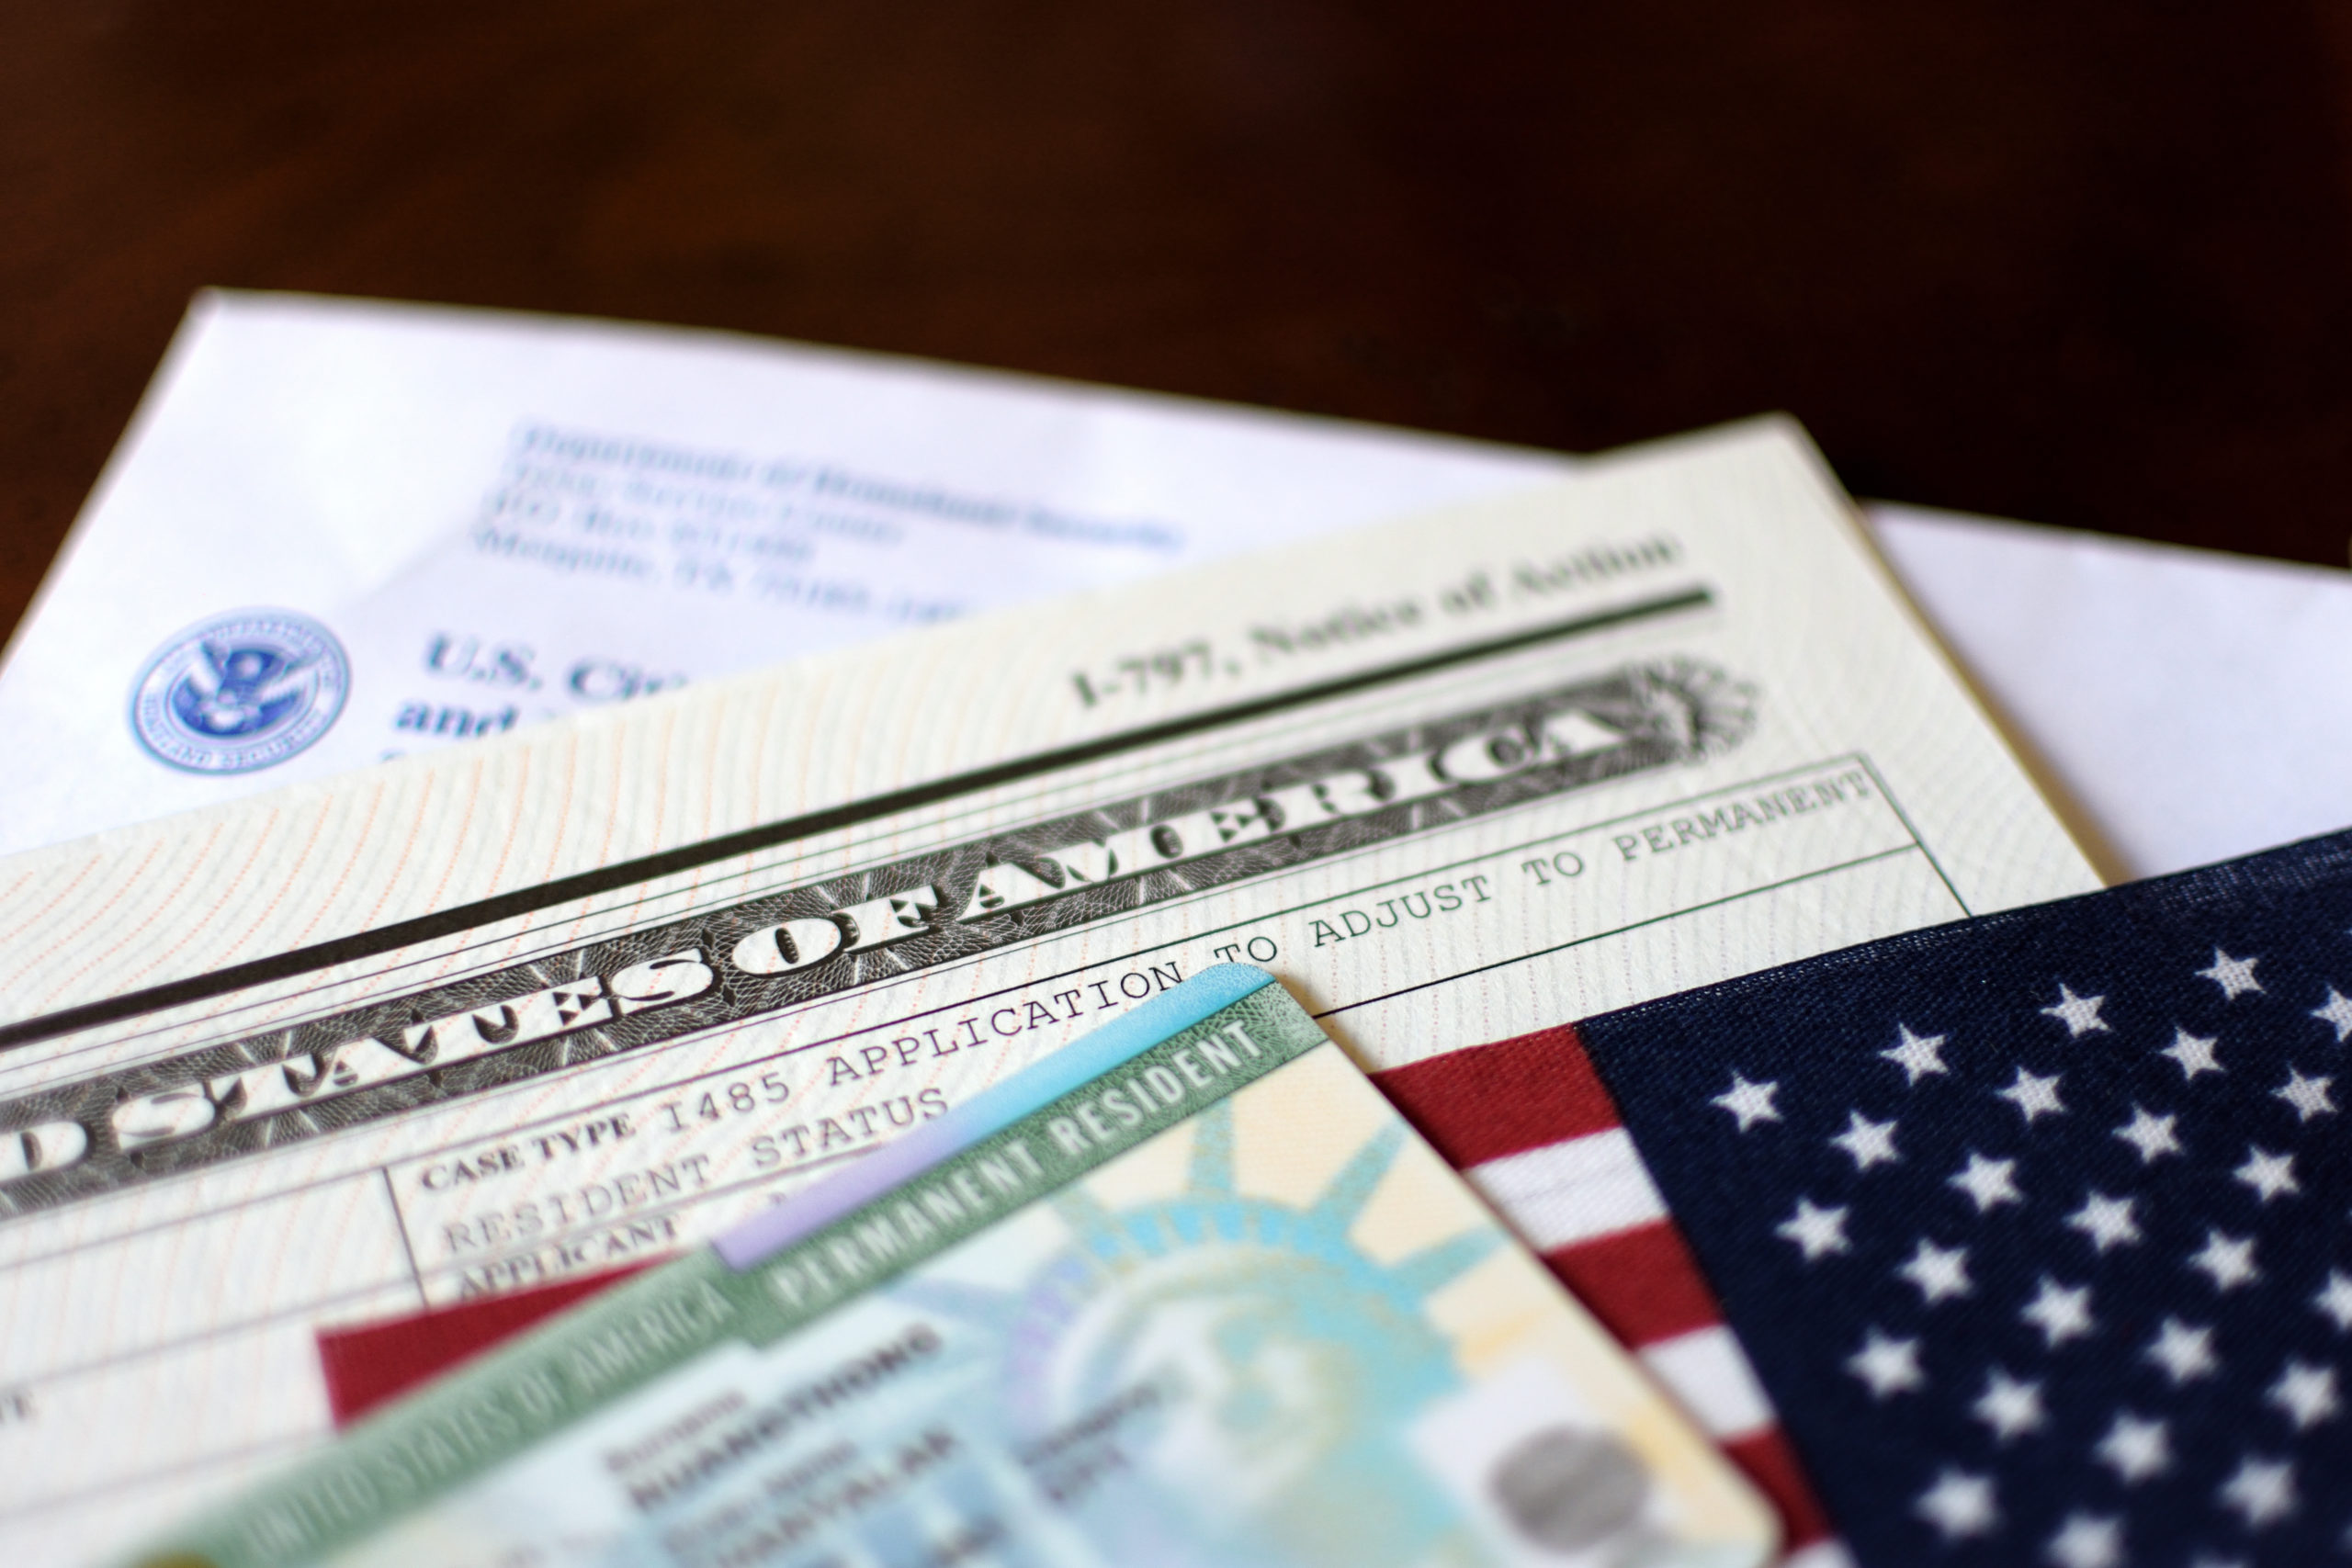 A green card and green card application form.